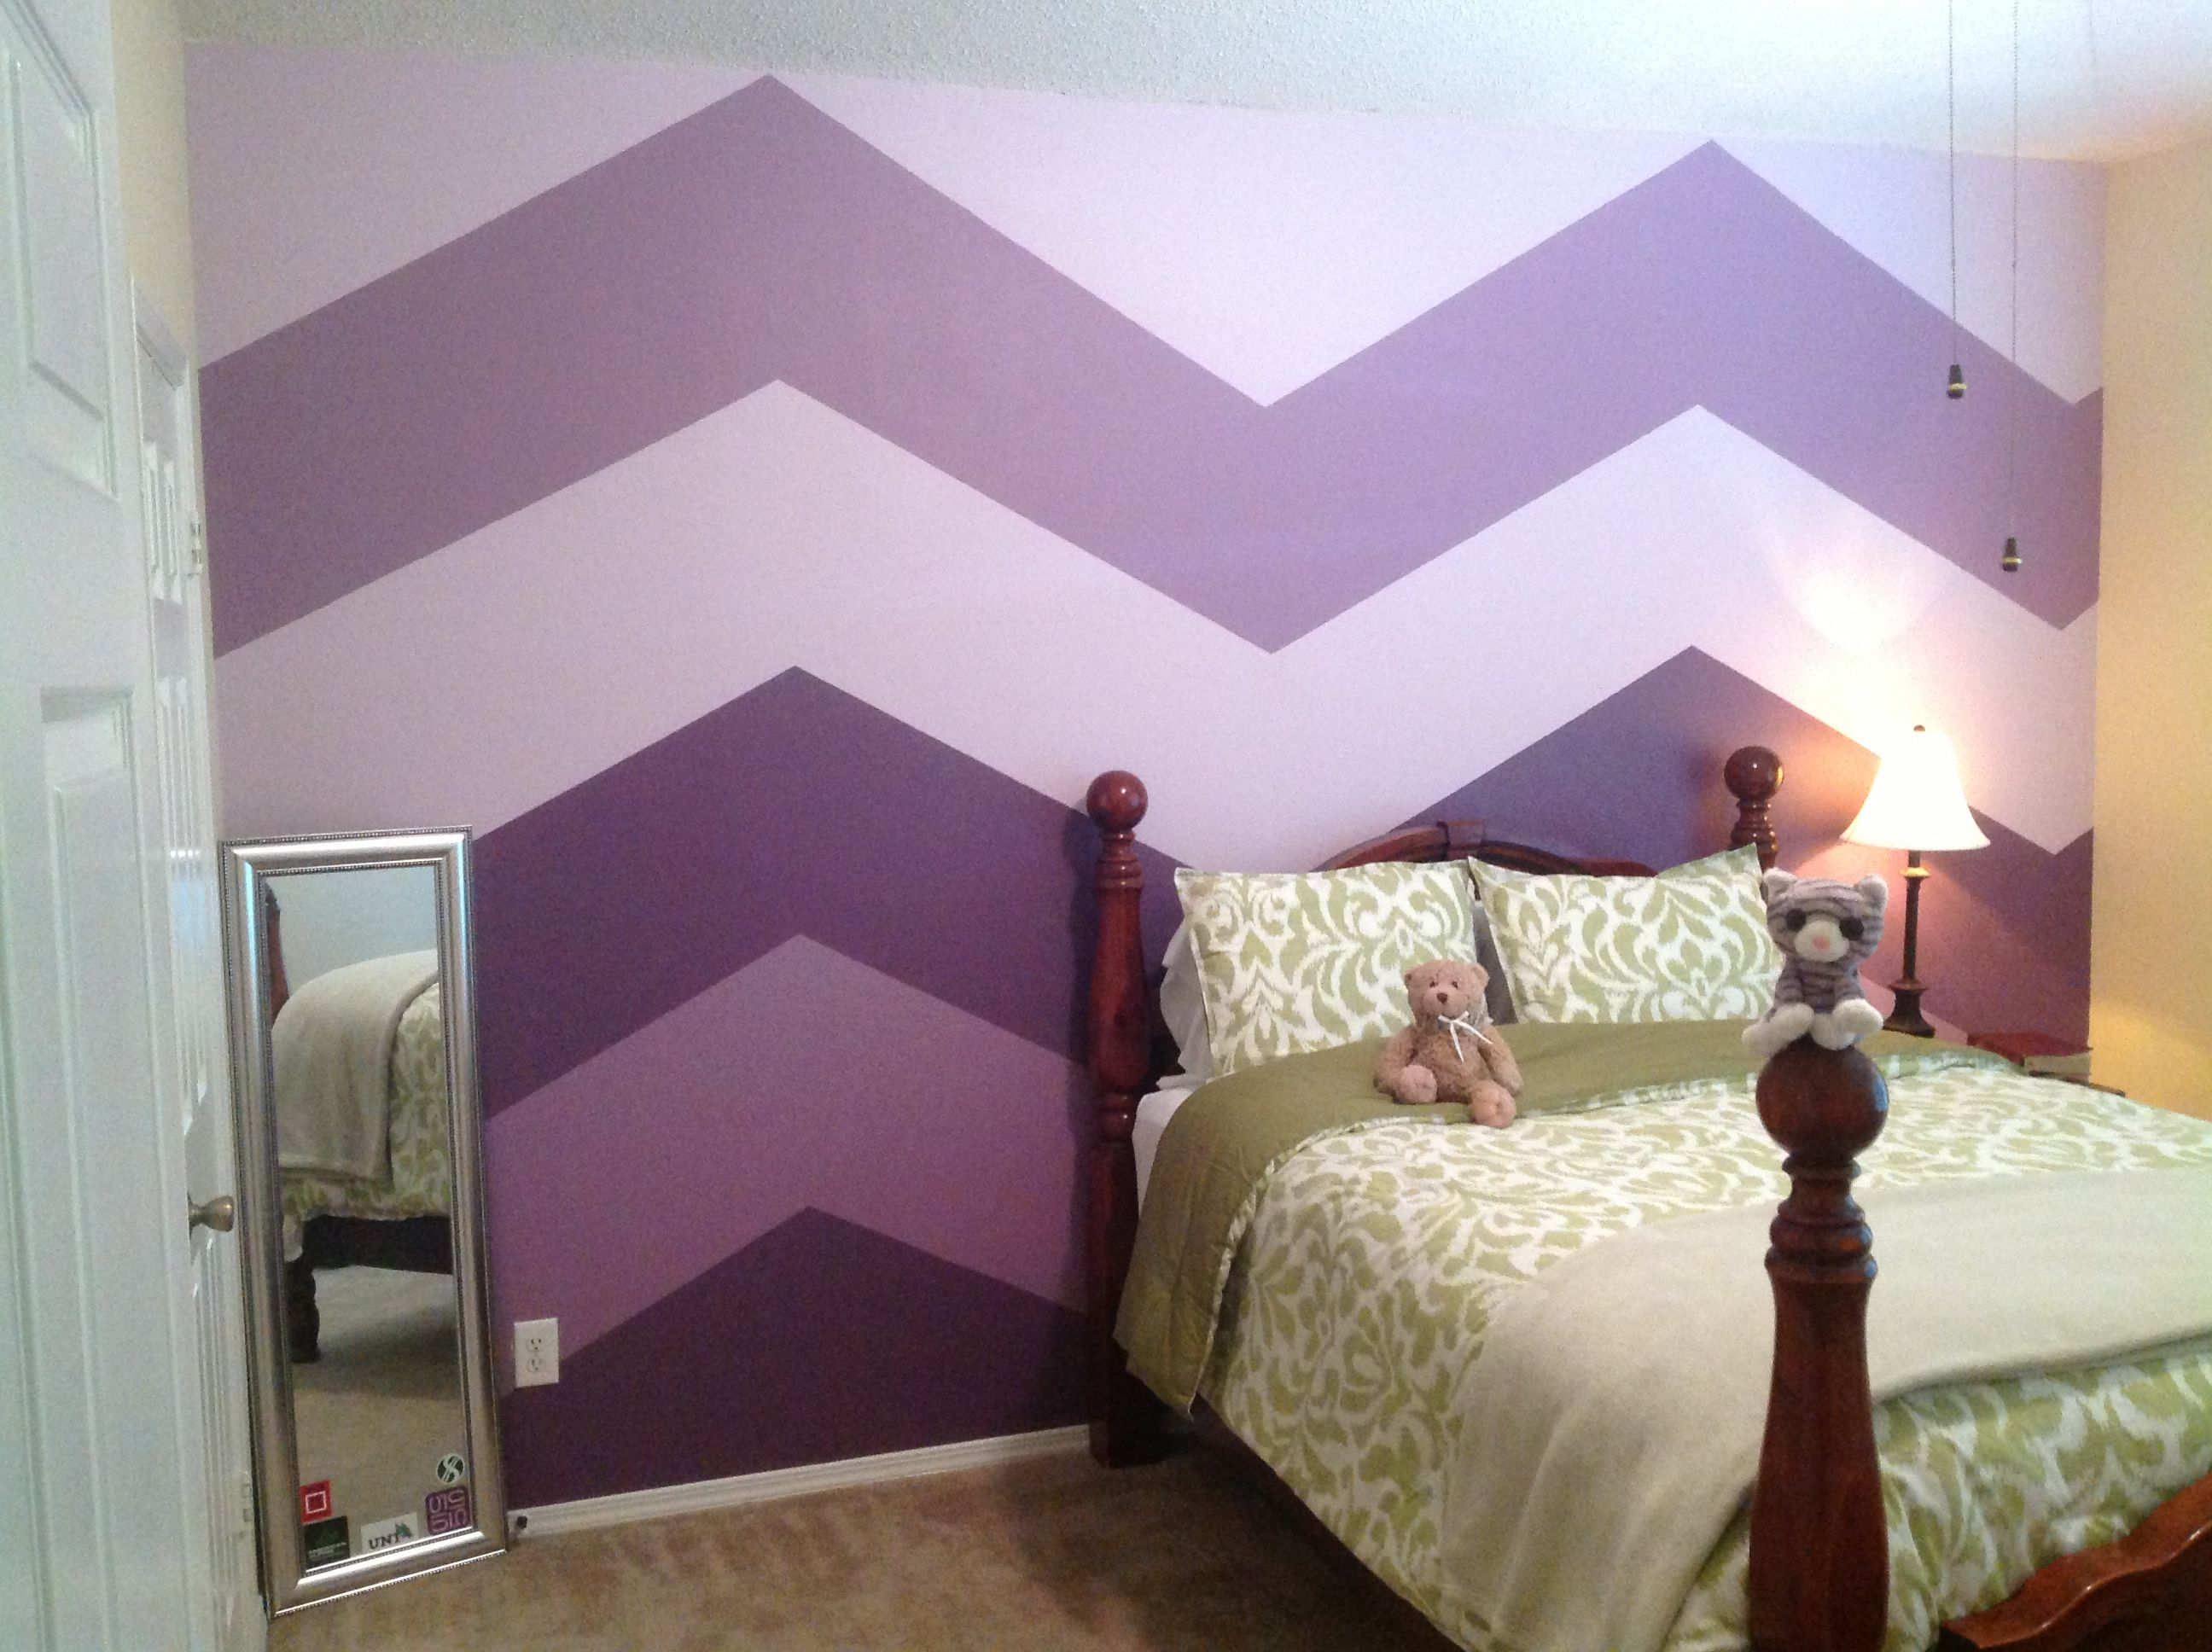 Big Bold Chevron Wall Stripes With Just 3 Shades Of Purple Paint Painters Tape And